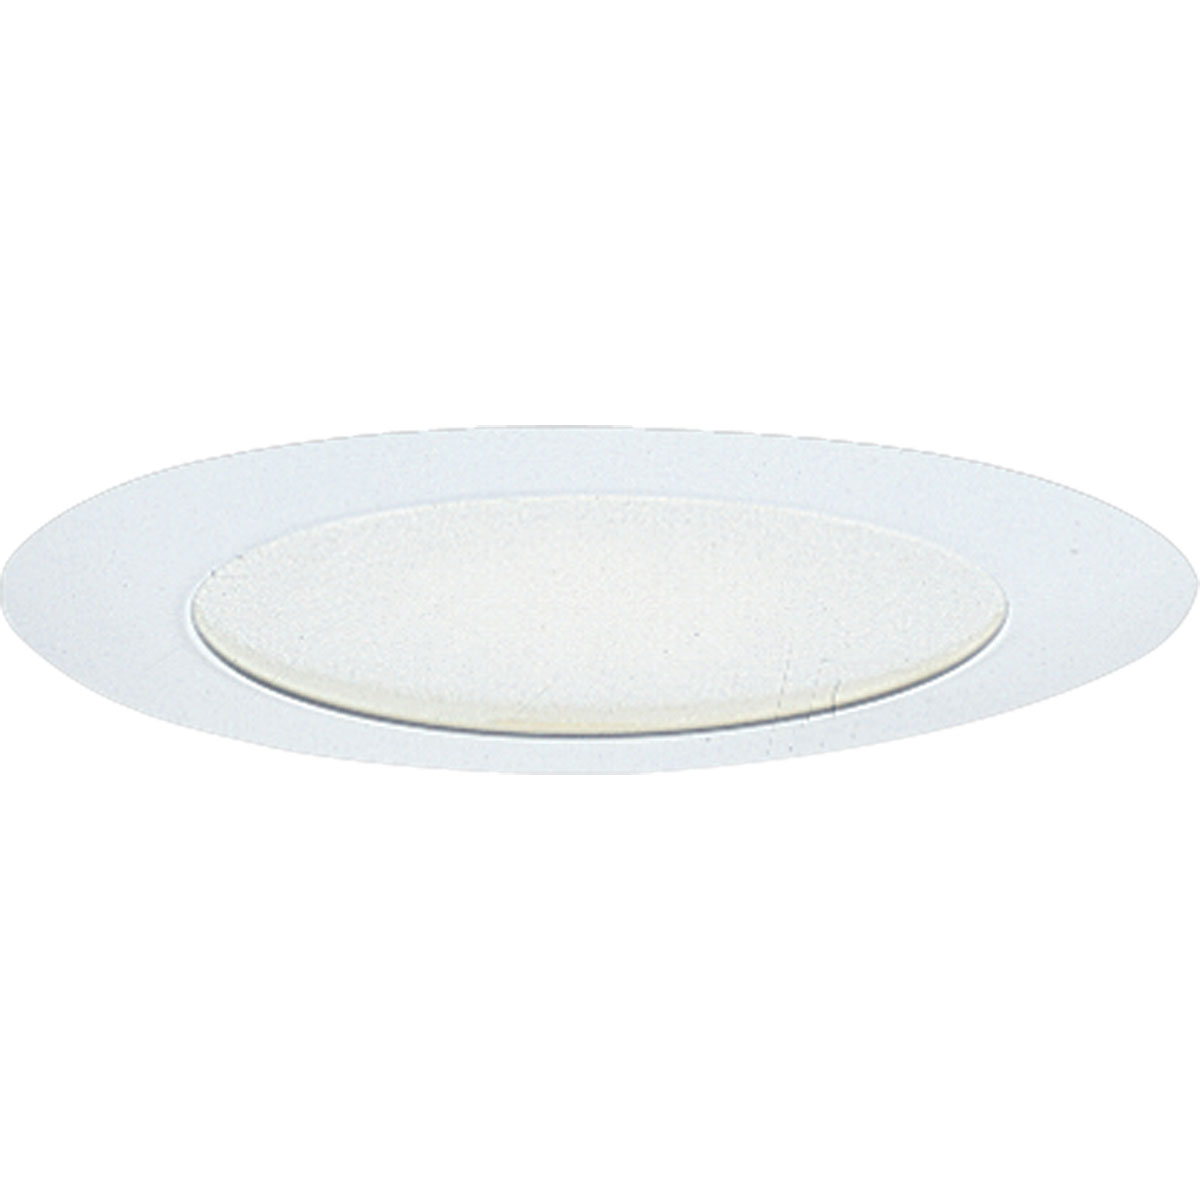 Recessed lighting glass trim : Progress lighting p albalite glass recessed trim